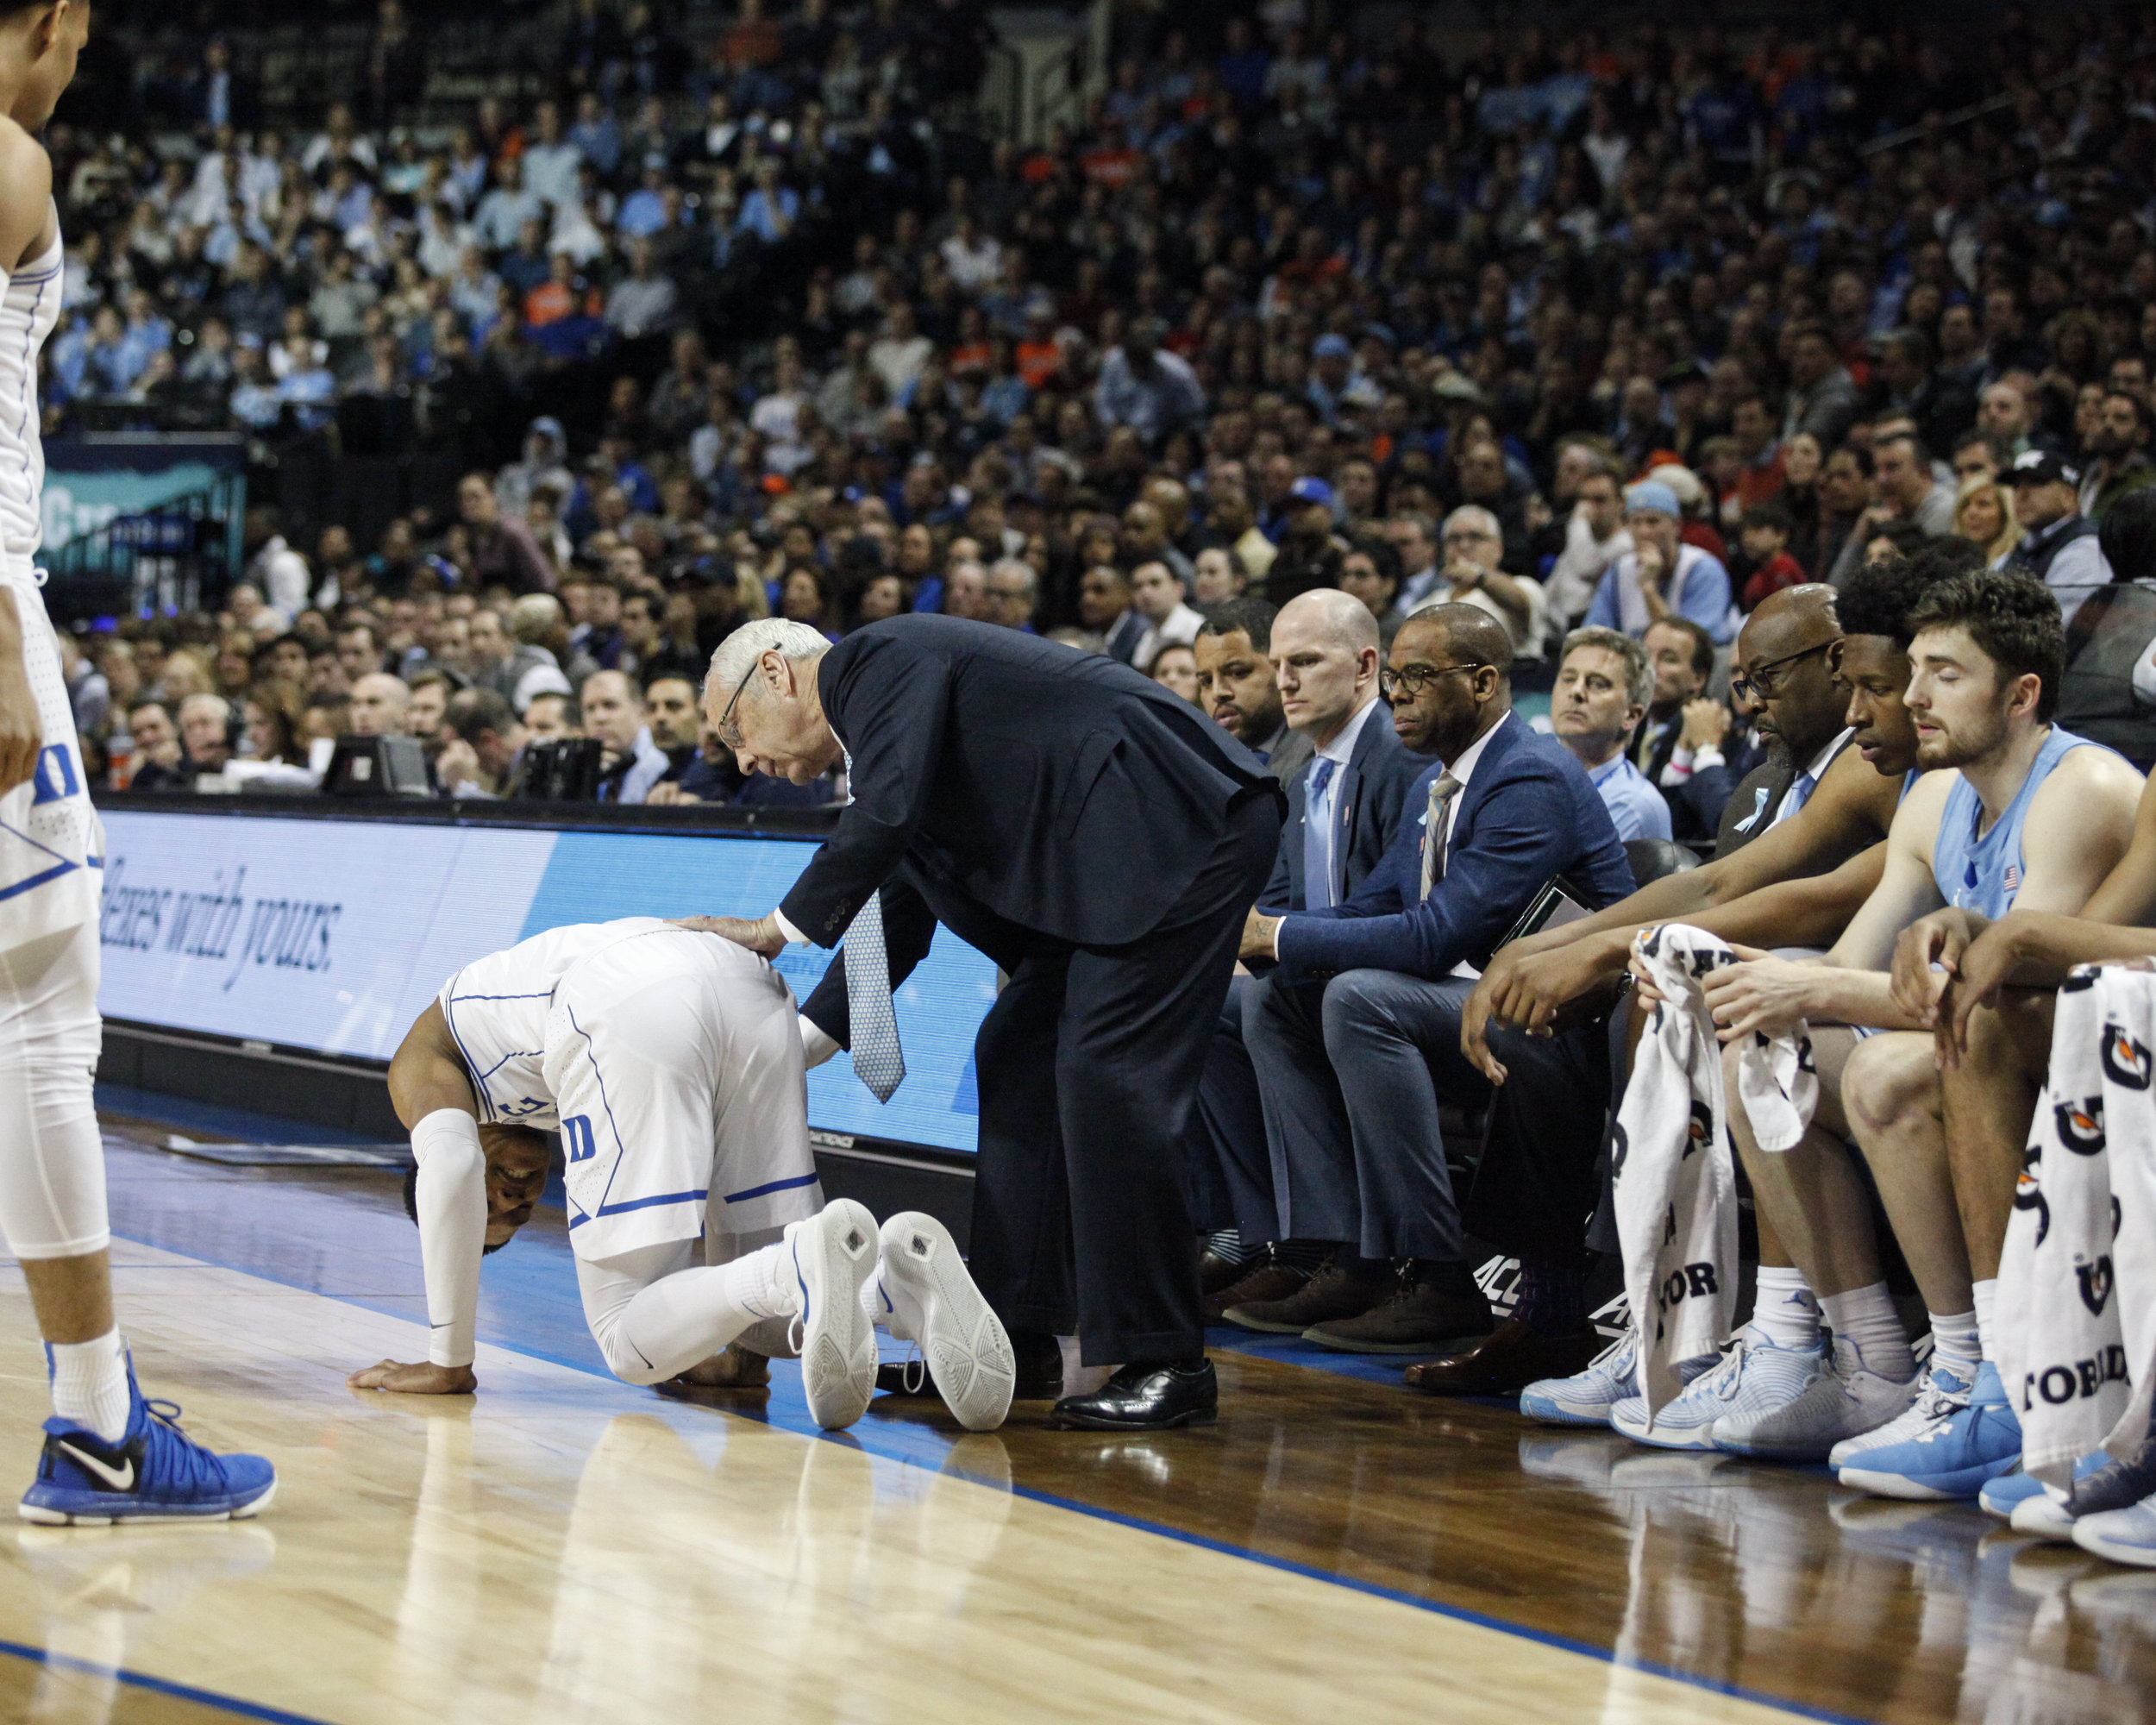 UNC head coach Roy Williams leans down to help Duke's Tre Duval with an injury during the ACC Tournament game at the Barclay Center in Brooklyn, New York.